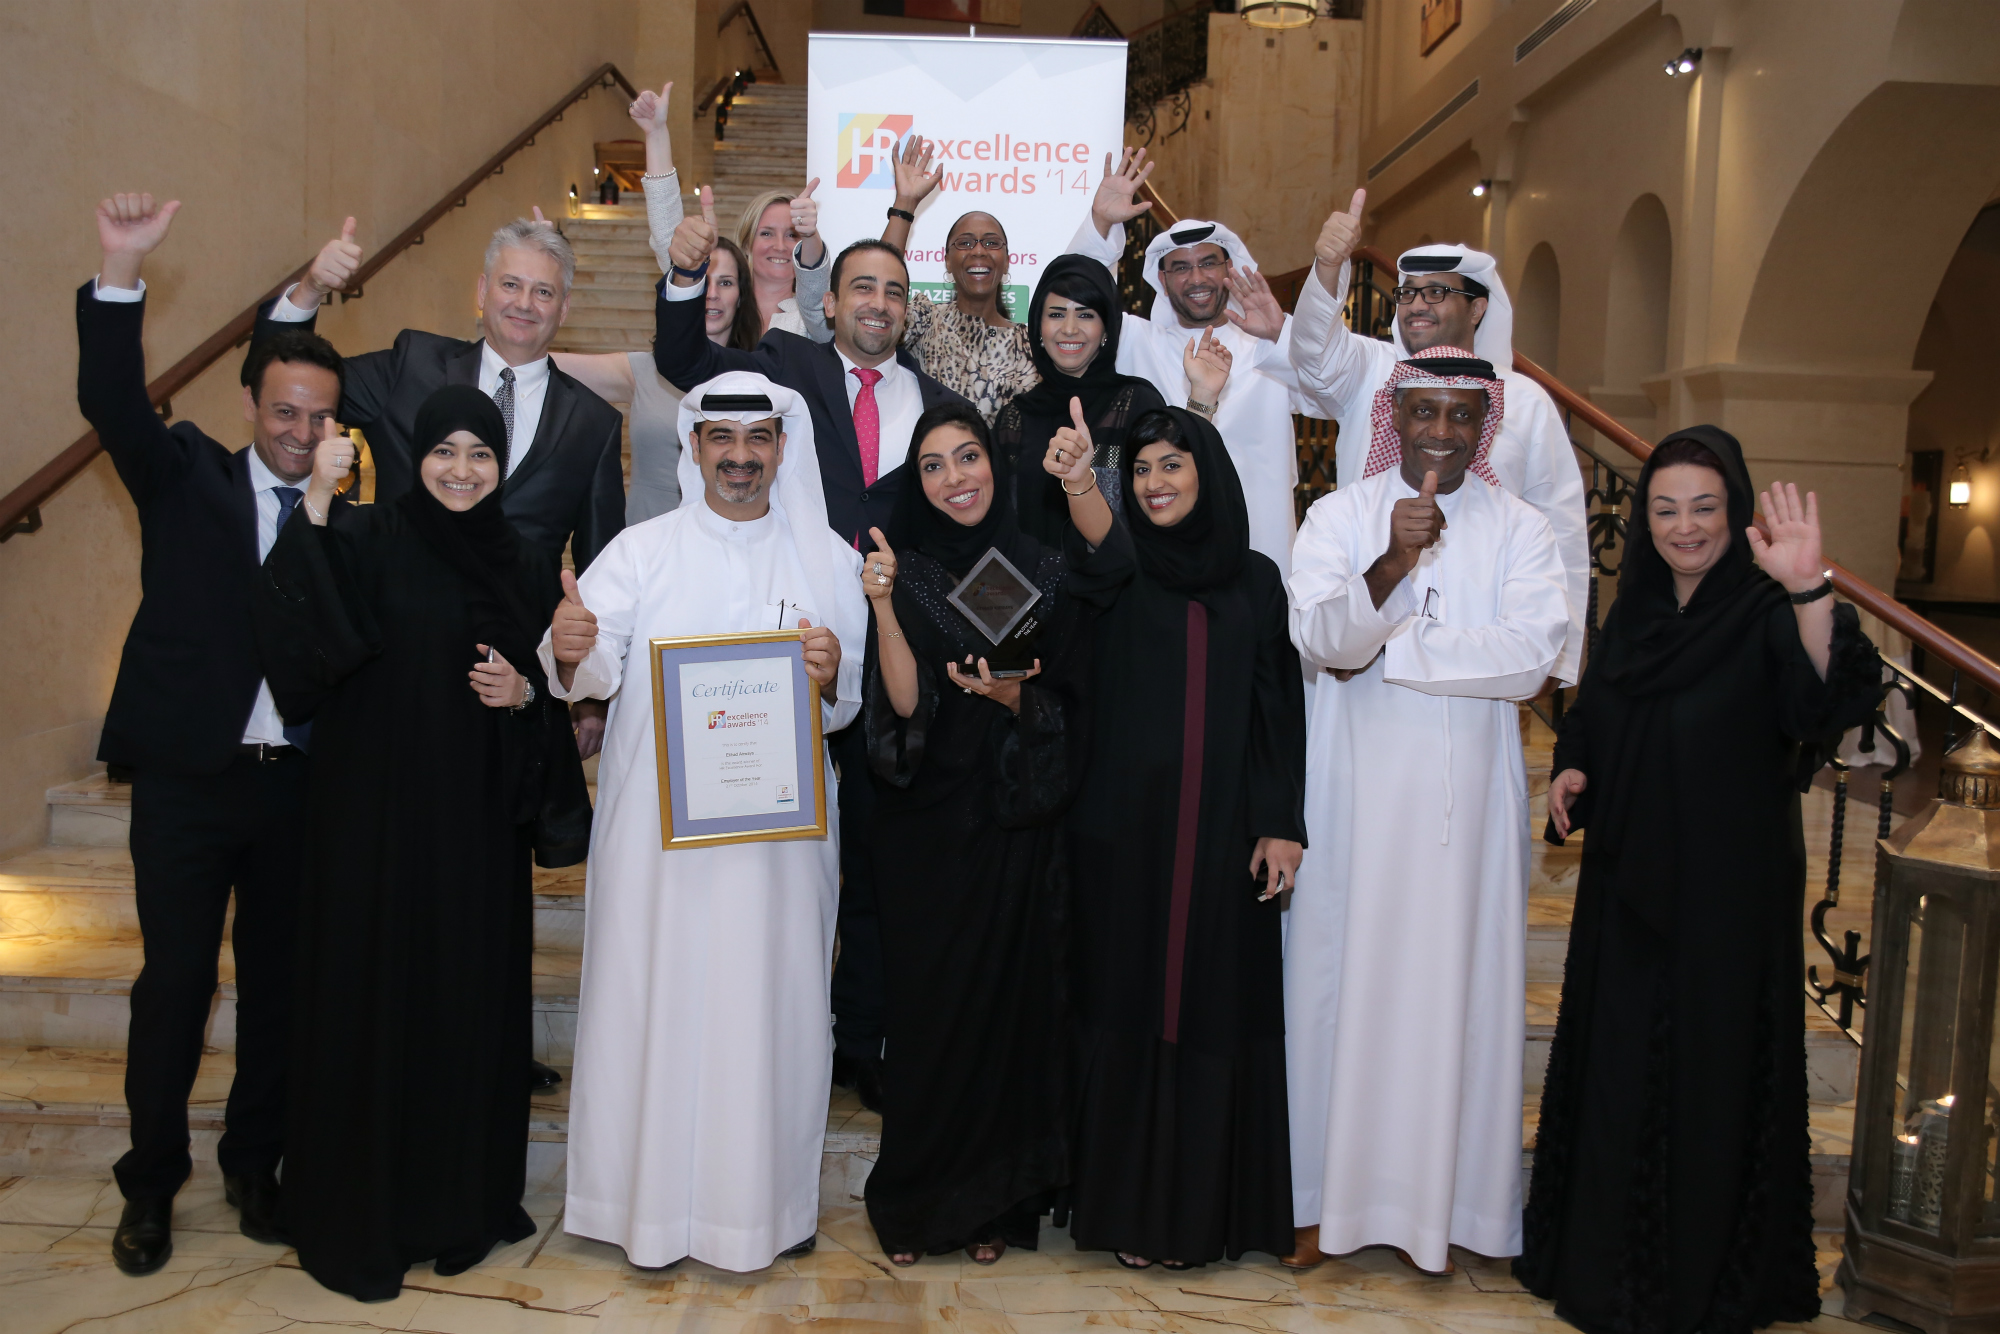 Etihad Airways collected the 'Employer of the Year' award at the Middle East HR Excellence Awards 2014 in Dubai last night.